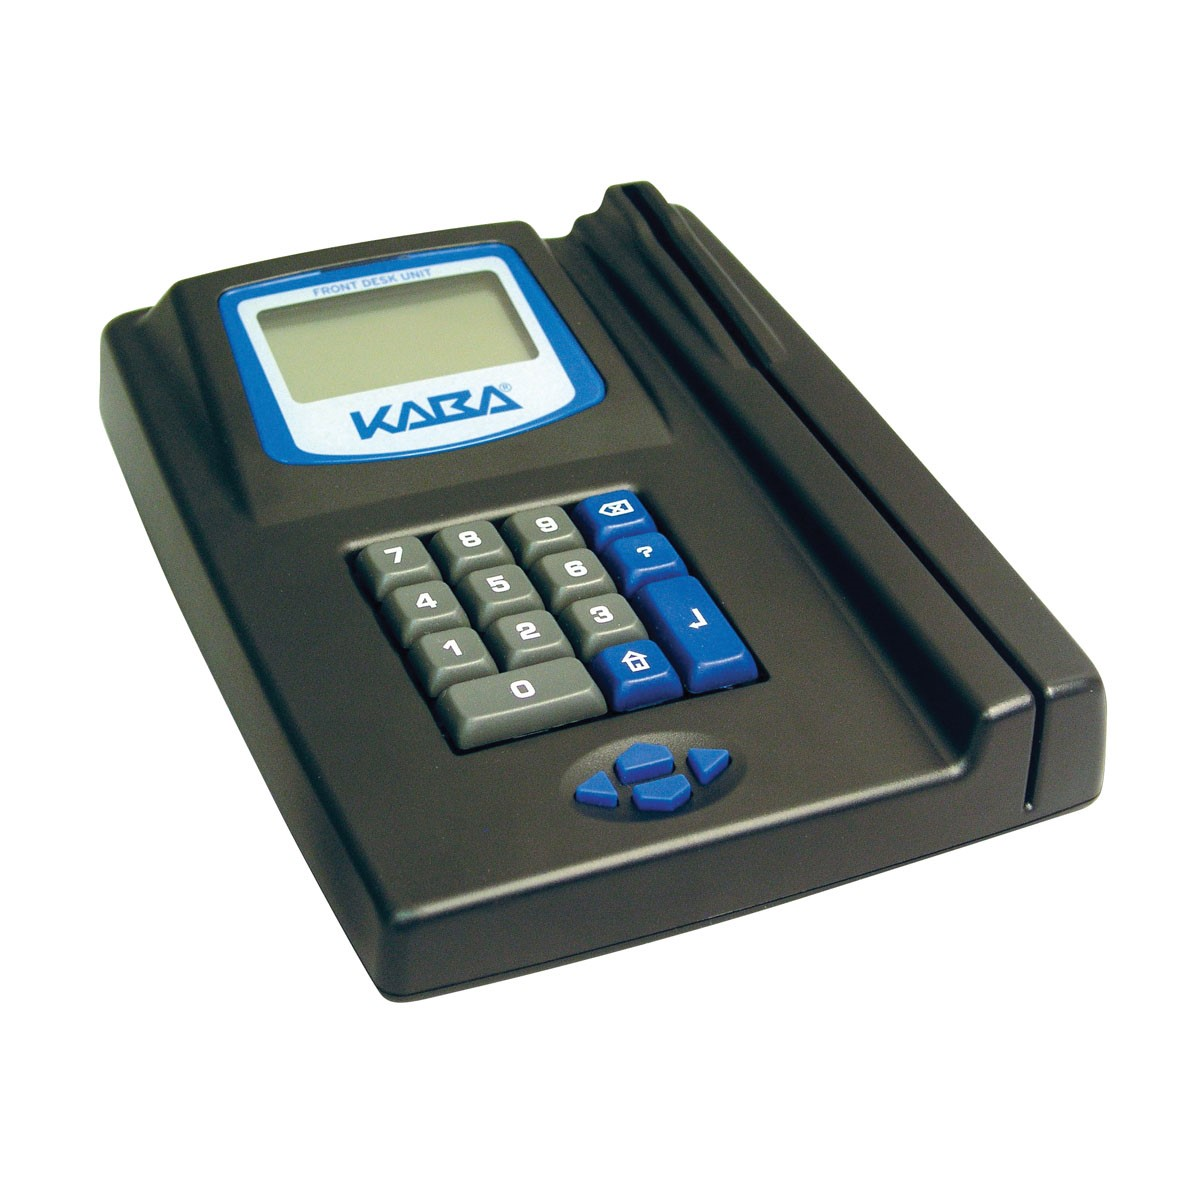 Kaba Lodging - Access Control Systems - Front Desk Unit (FDU)